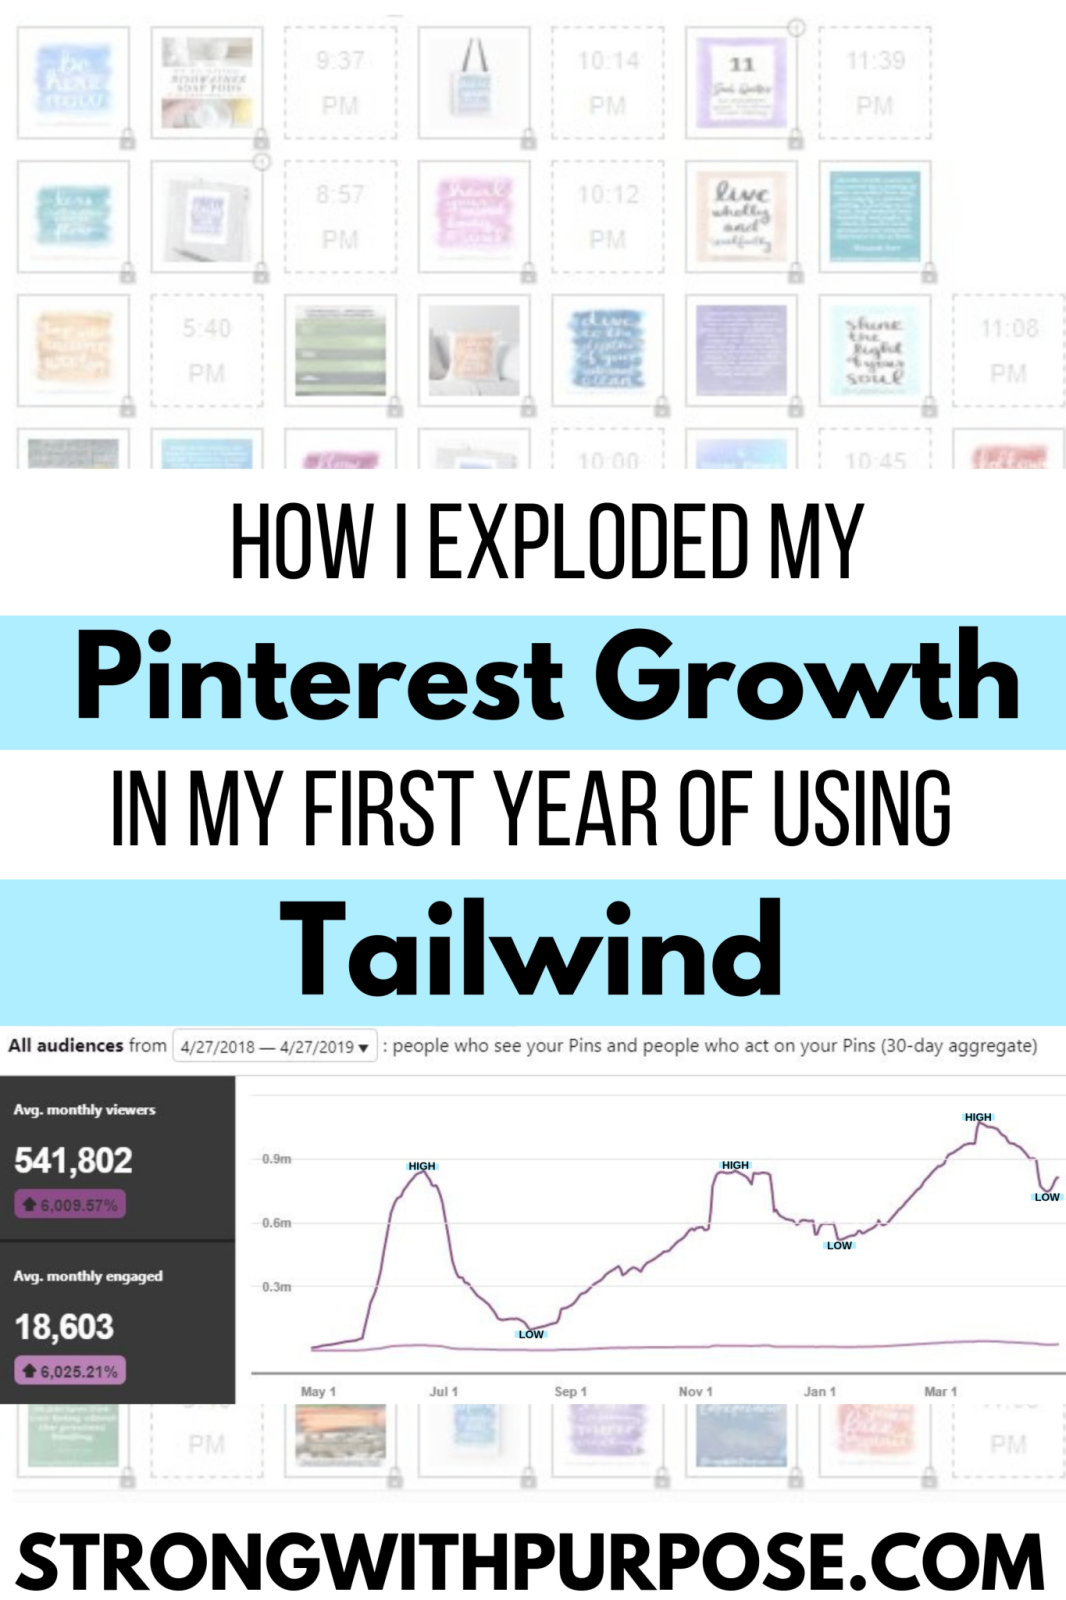 How I Exploded My Pinterest Growth in My First Year of Using Tailwind - Pinterest Analytics - Strong with Purpose